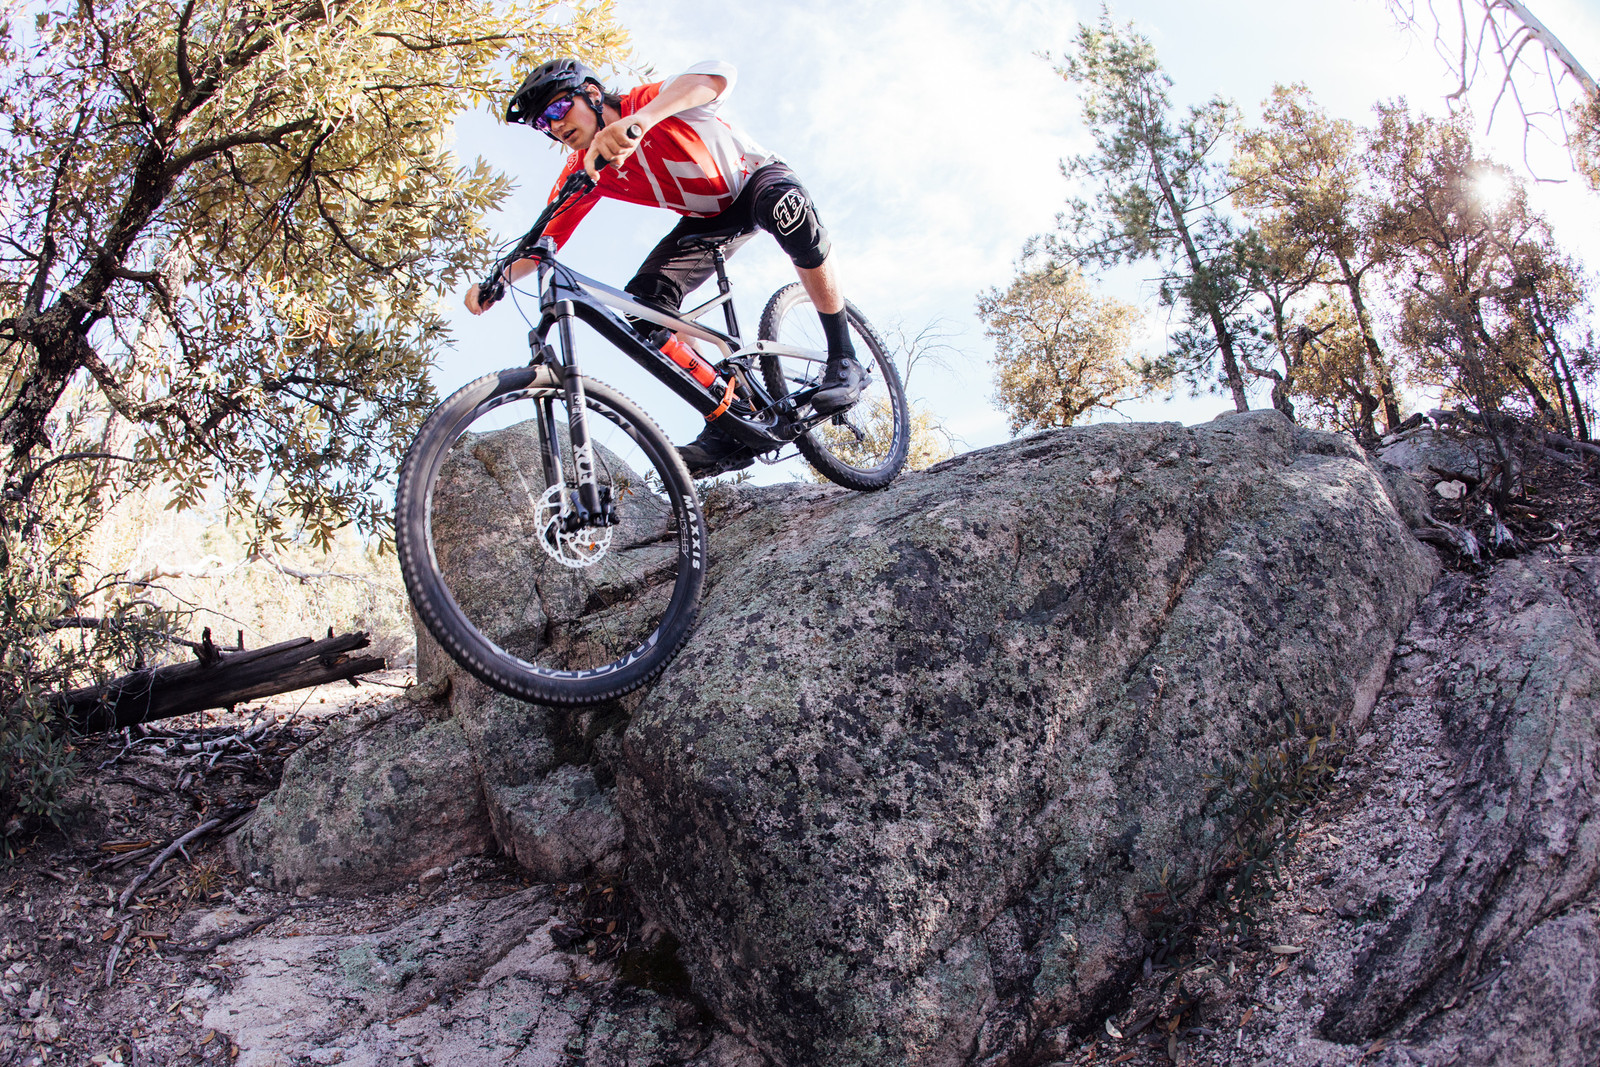 Rock Rolling on Green Mountain - Just The Bangers - 2017 Vital MTB Test Sessions Photo Gallery - Mountain Biking Pictures - Vital MTB